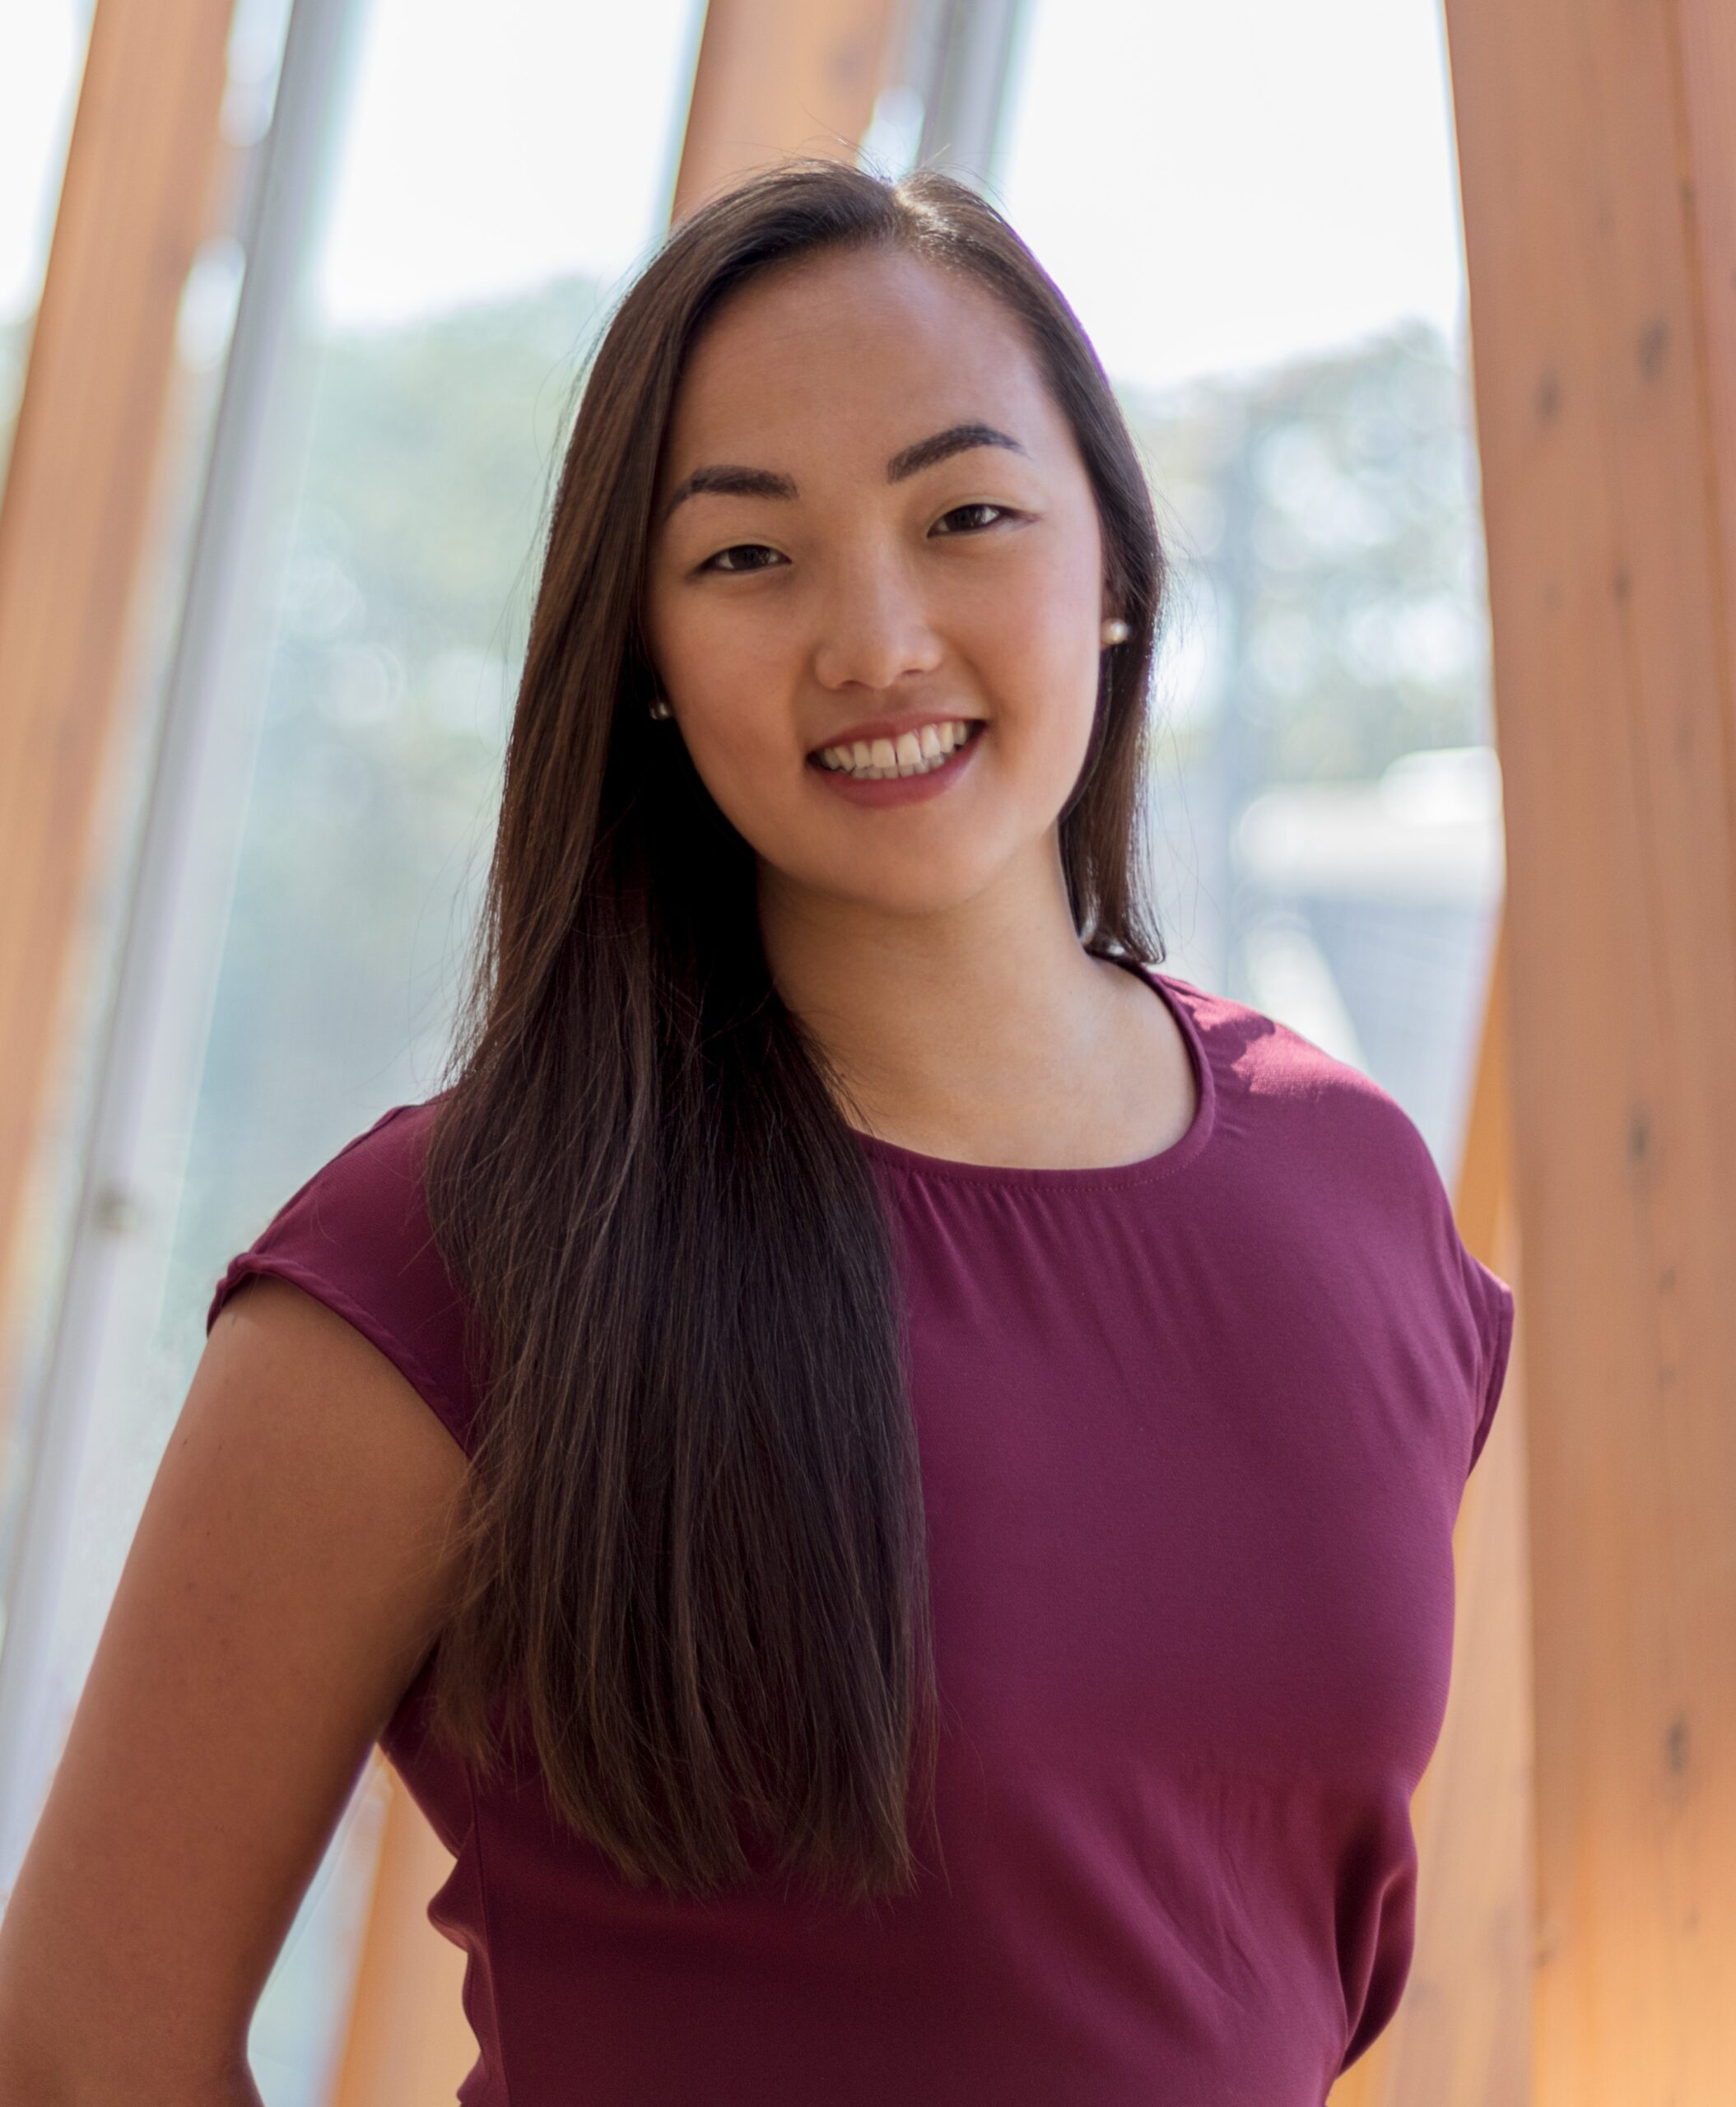 NextGen: Seeing What's Important with Dr. Jocelyn Leung